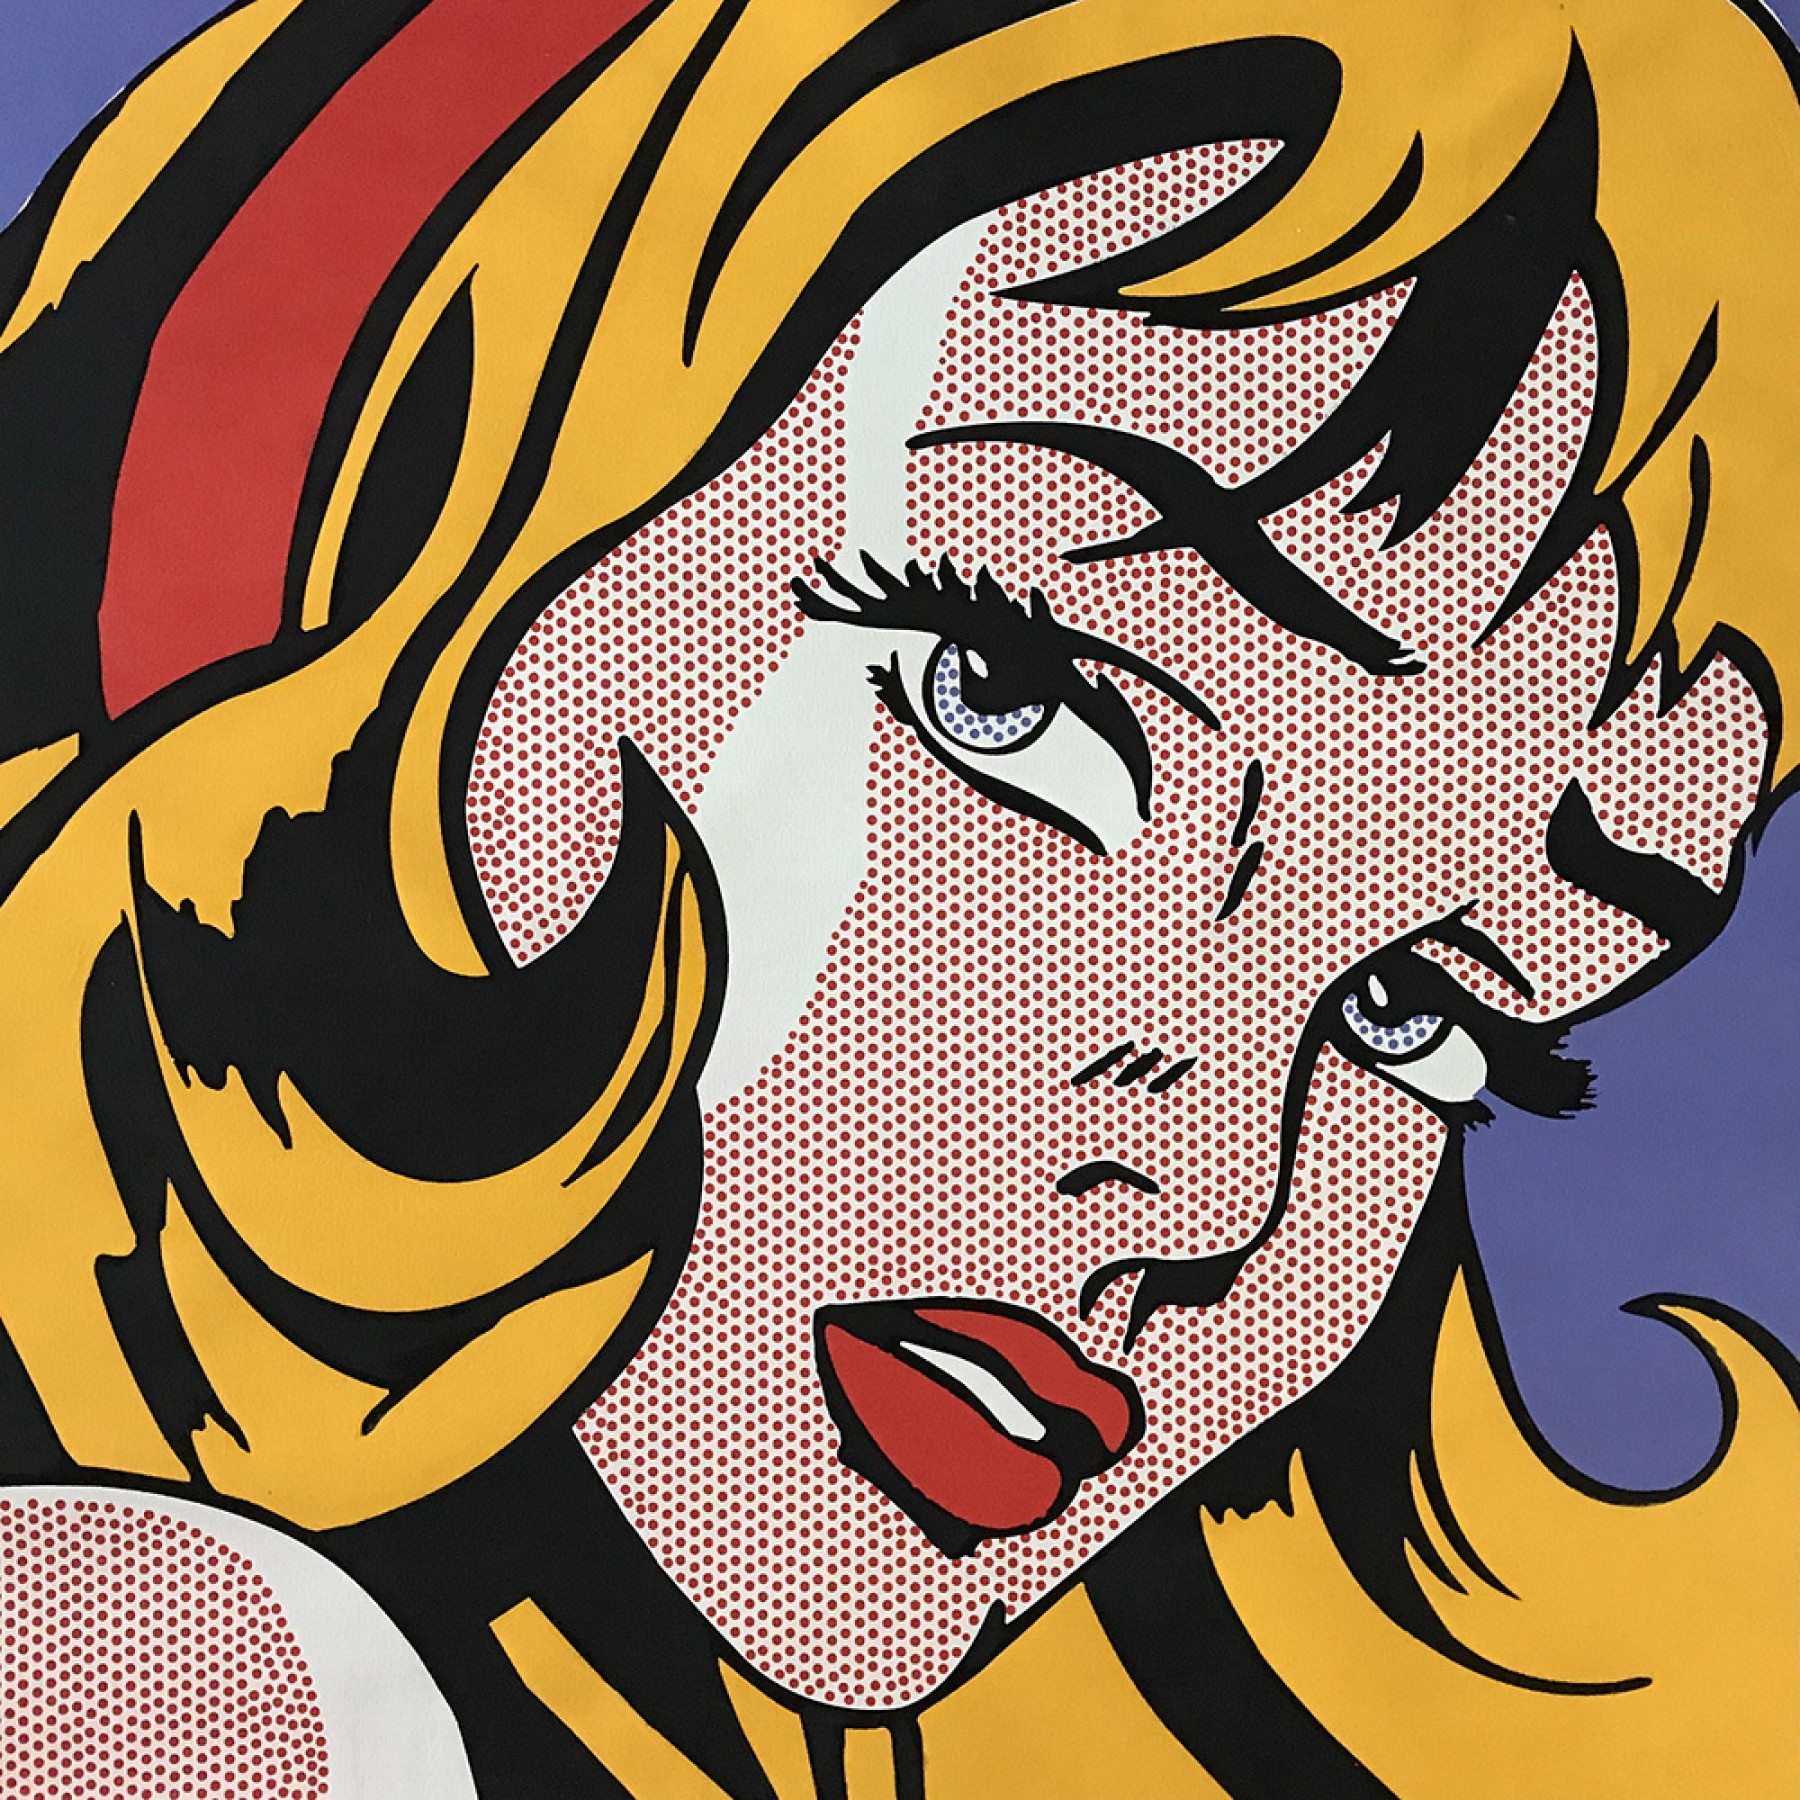 Girl With Ribbon in Hair: Homage to Roy Lichtenstein AP 2008